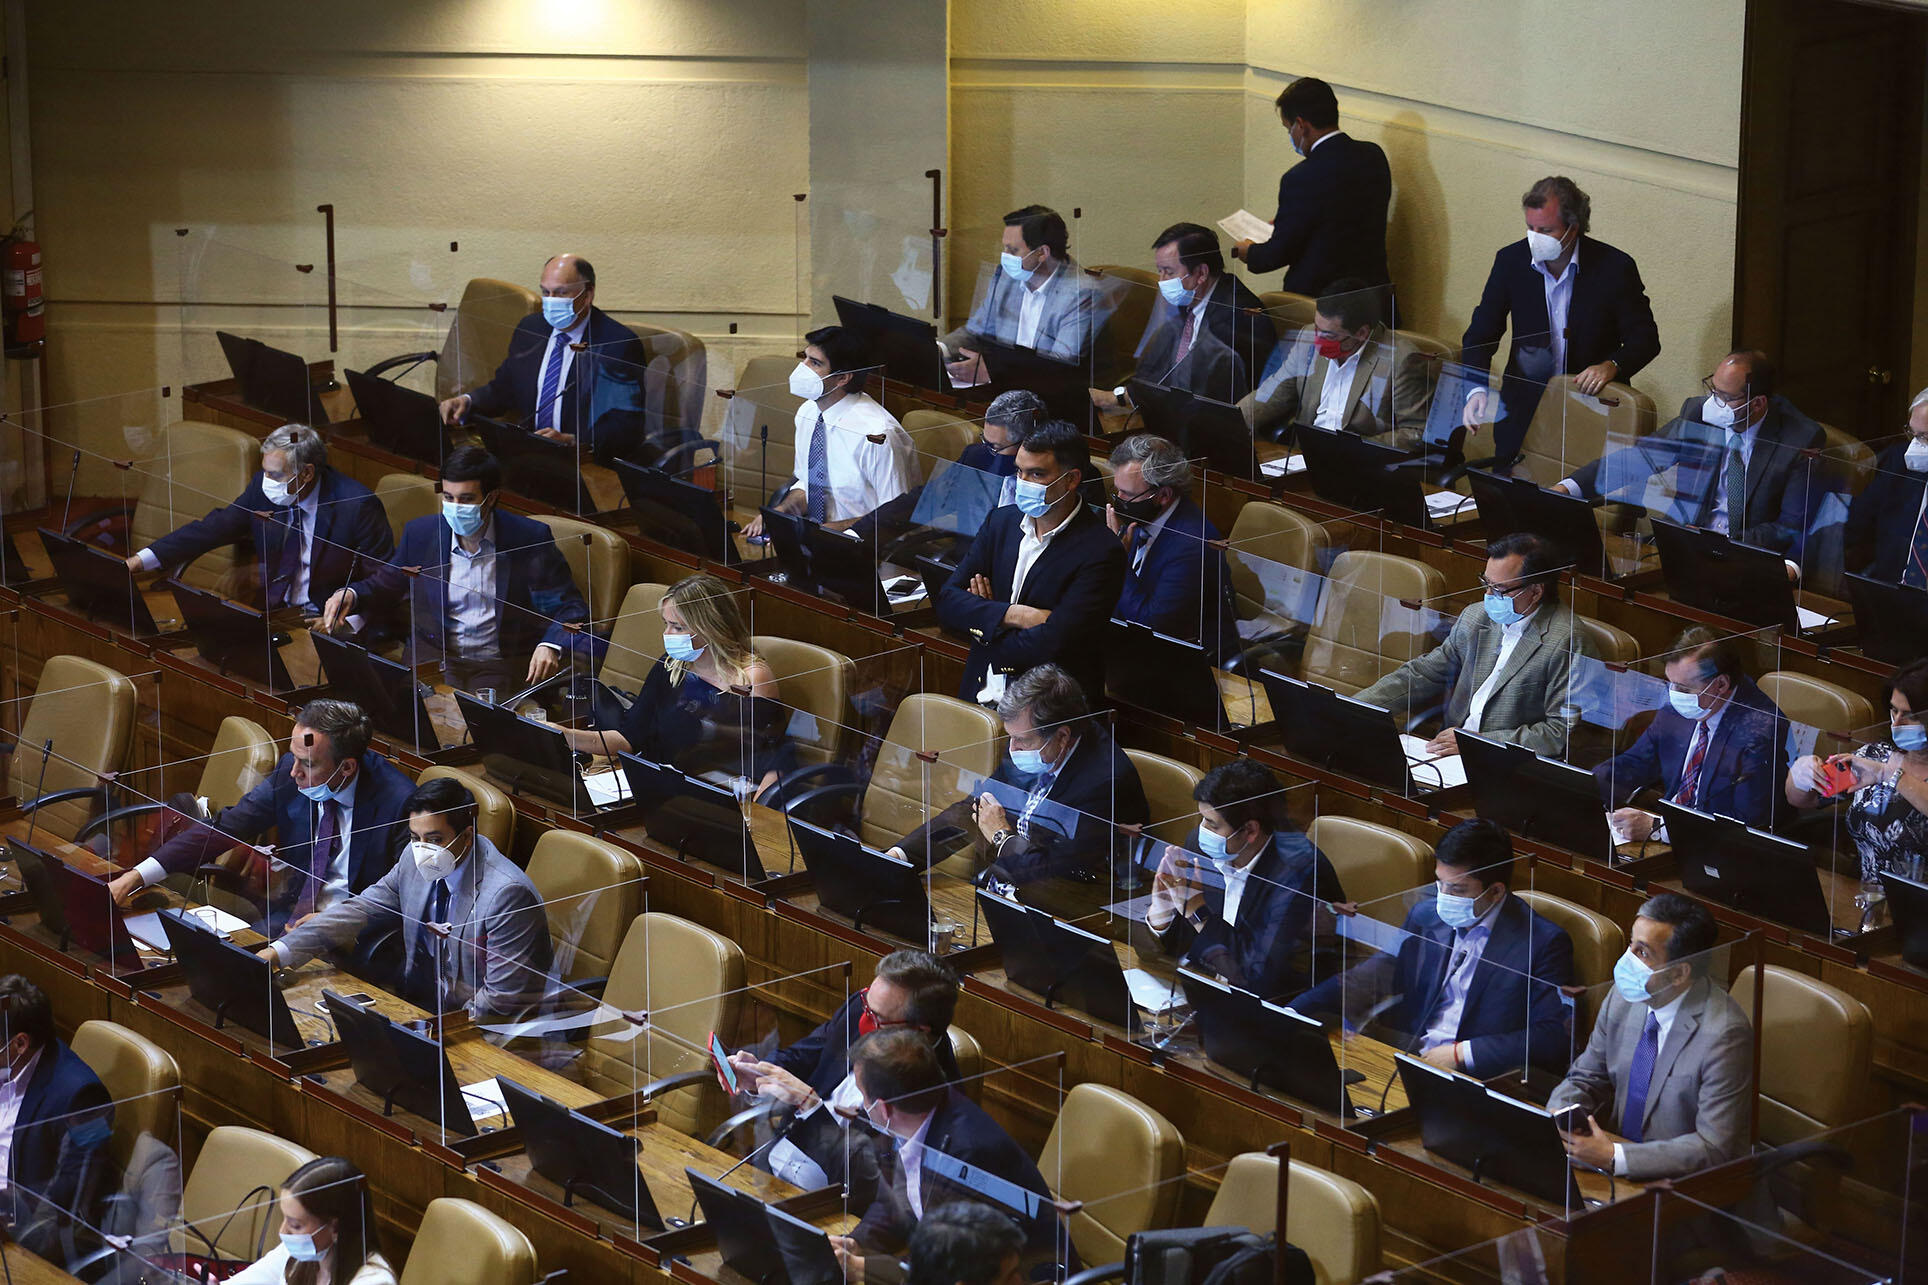 Members of Chile's Congress sit at their divided desks to discuss constitutional reform during the pandemic, November 2020. (Photo by Vivian Morales C.)